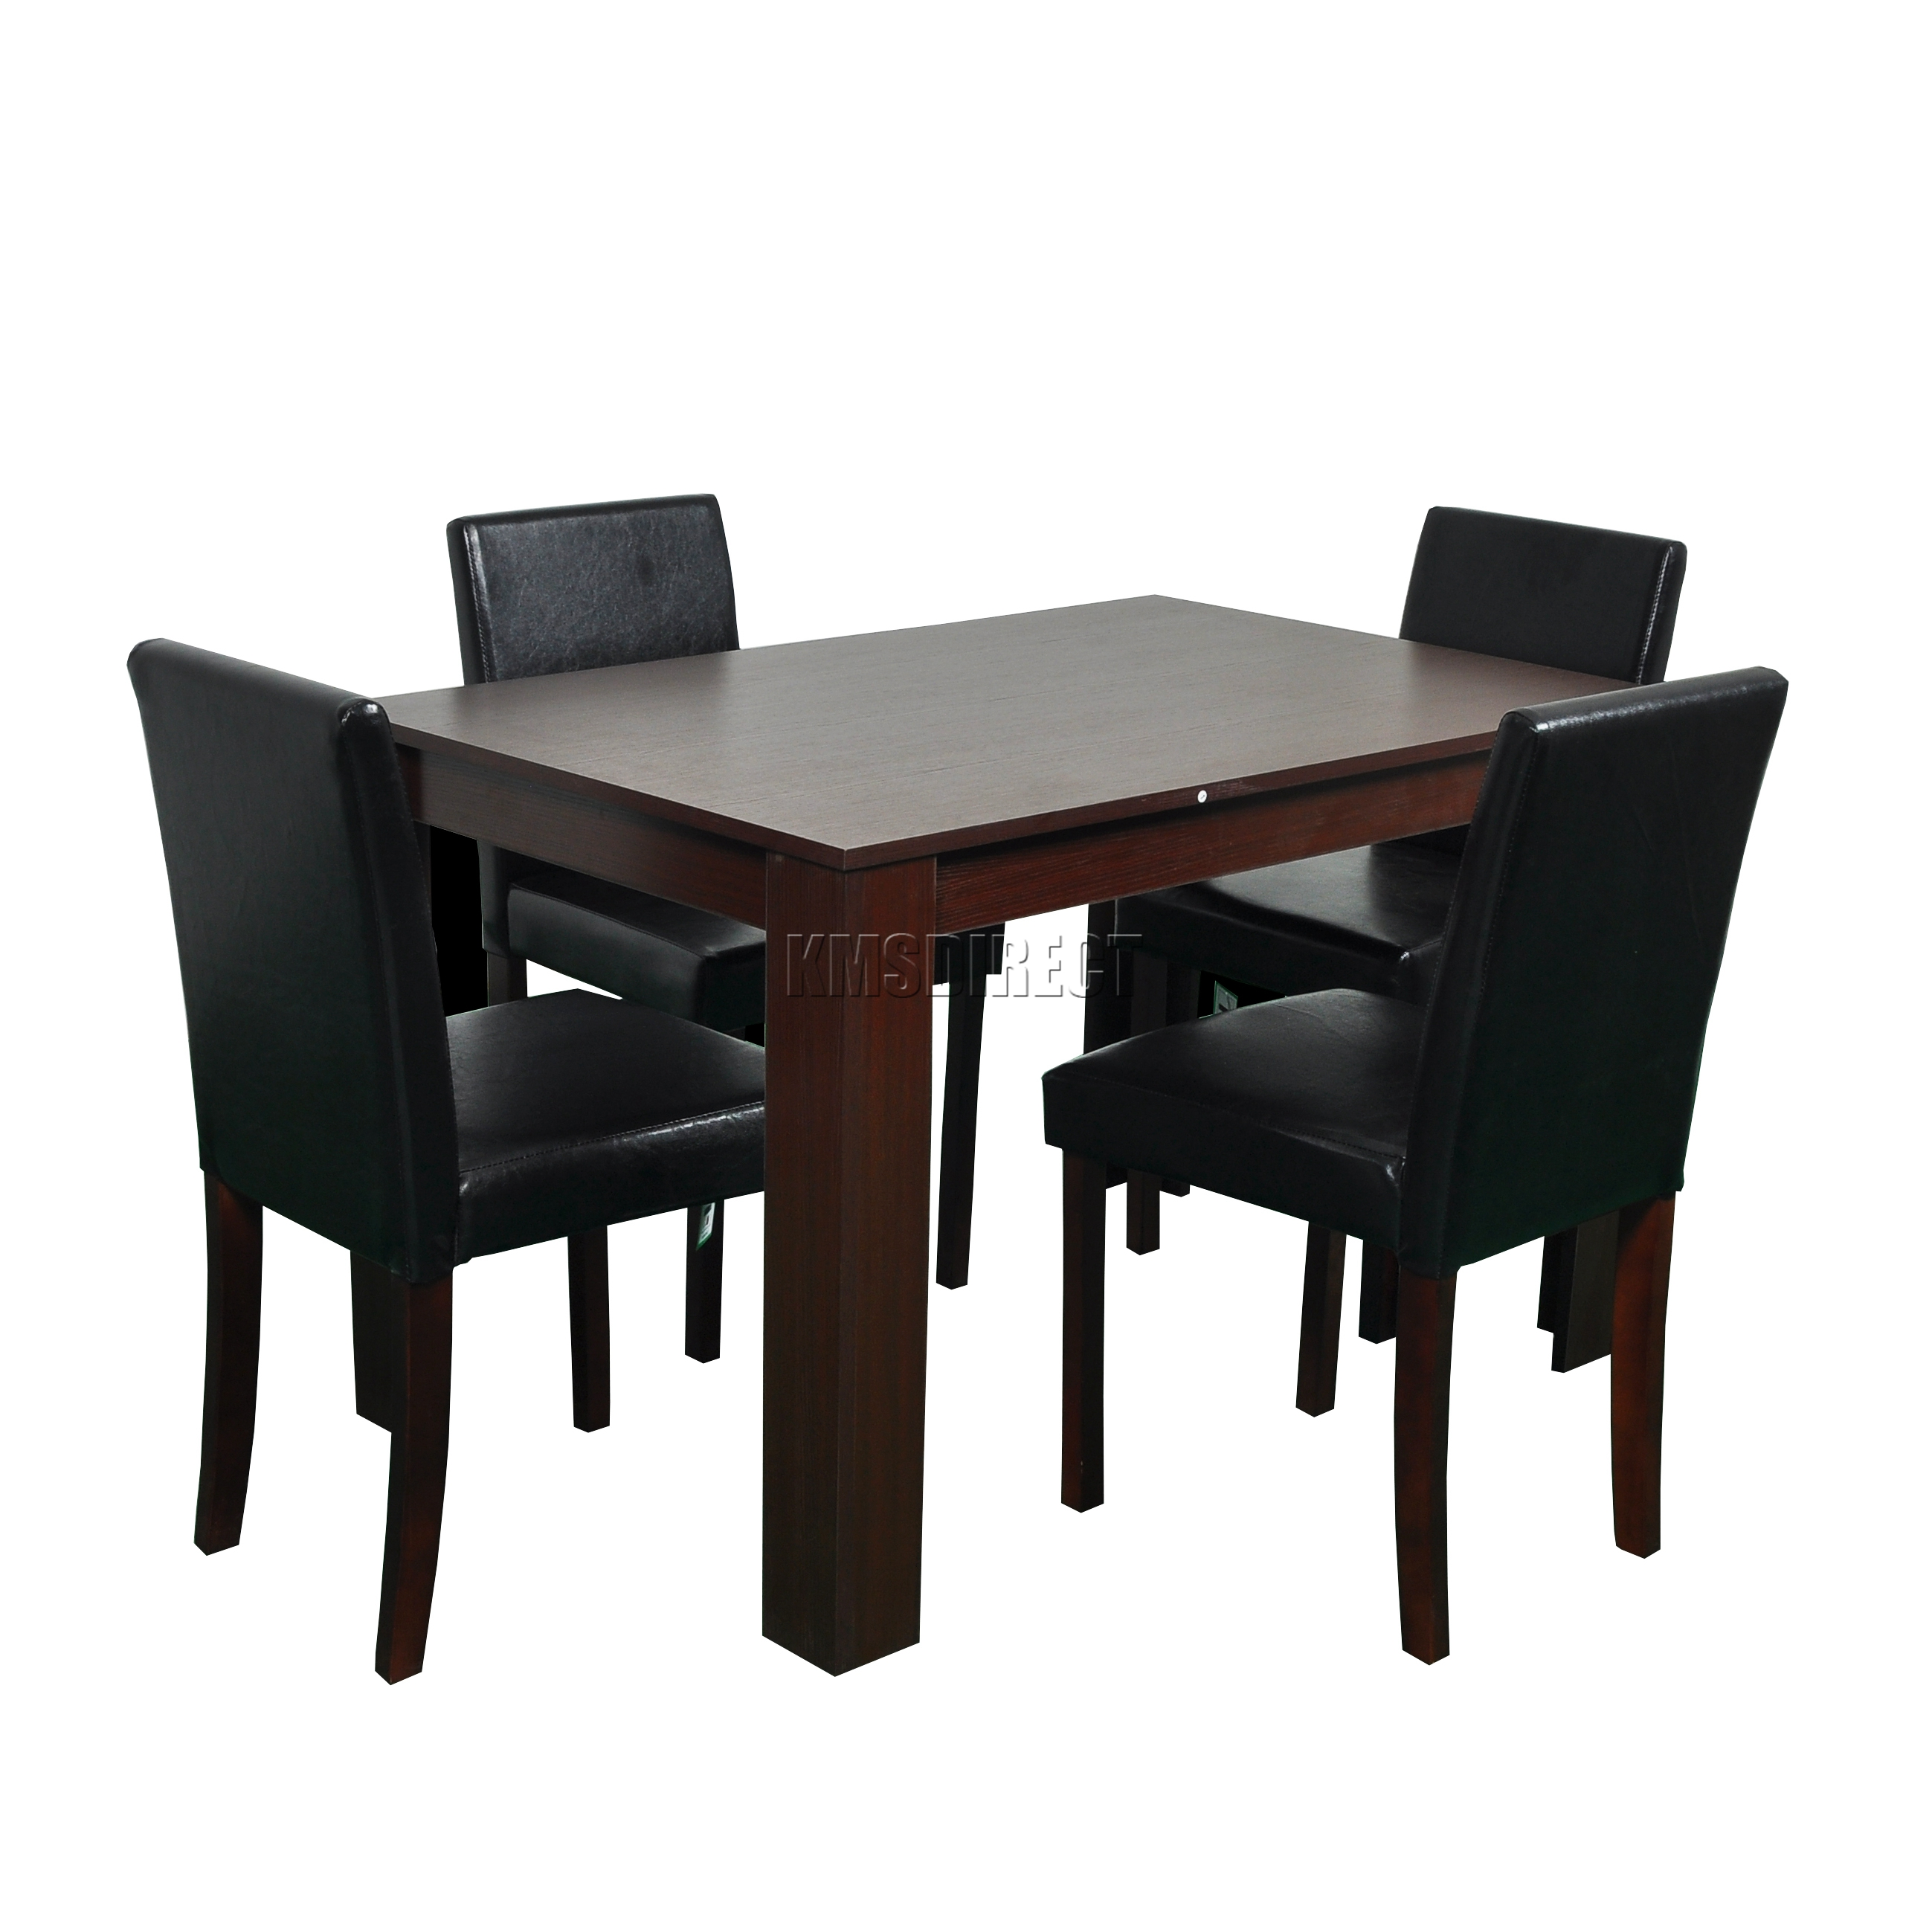 FoxHunter Wooden Dining Table And 4 PU Faux Leather Chairs Set Furniture Waln